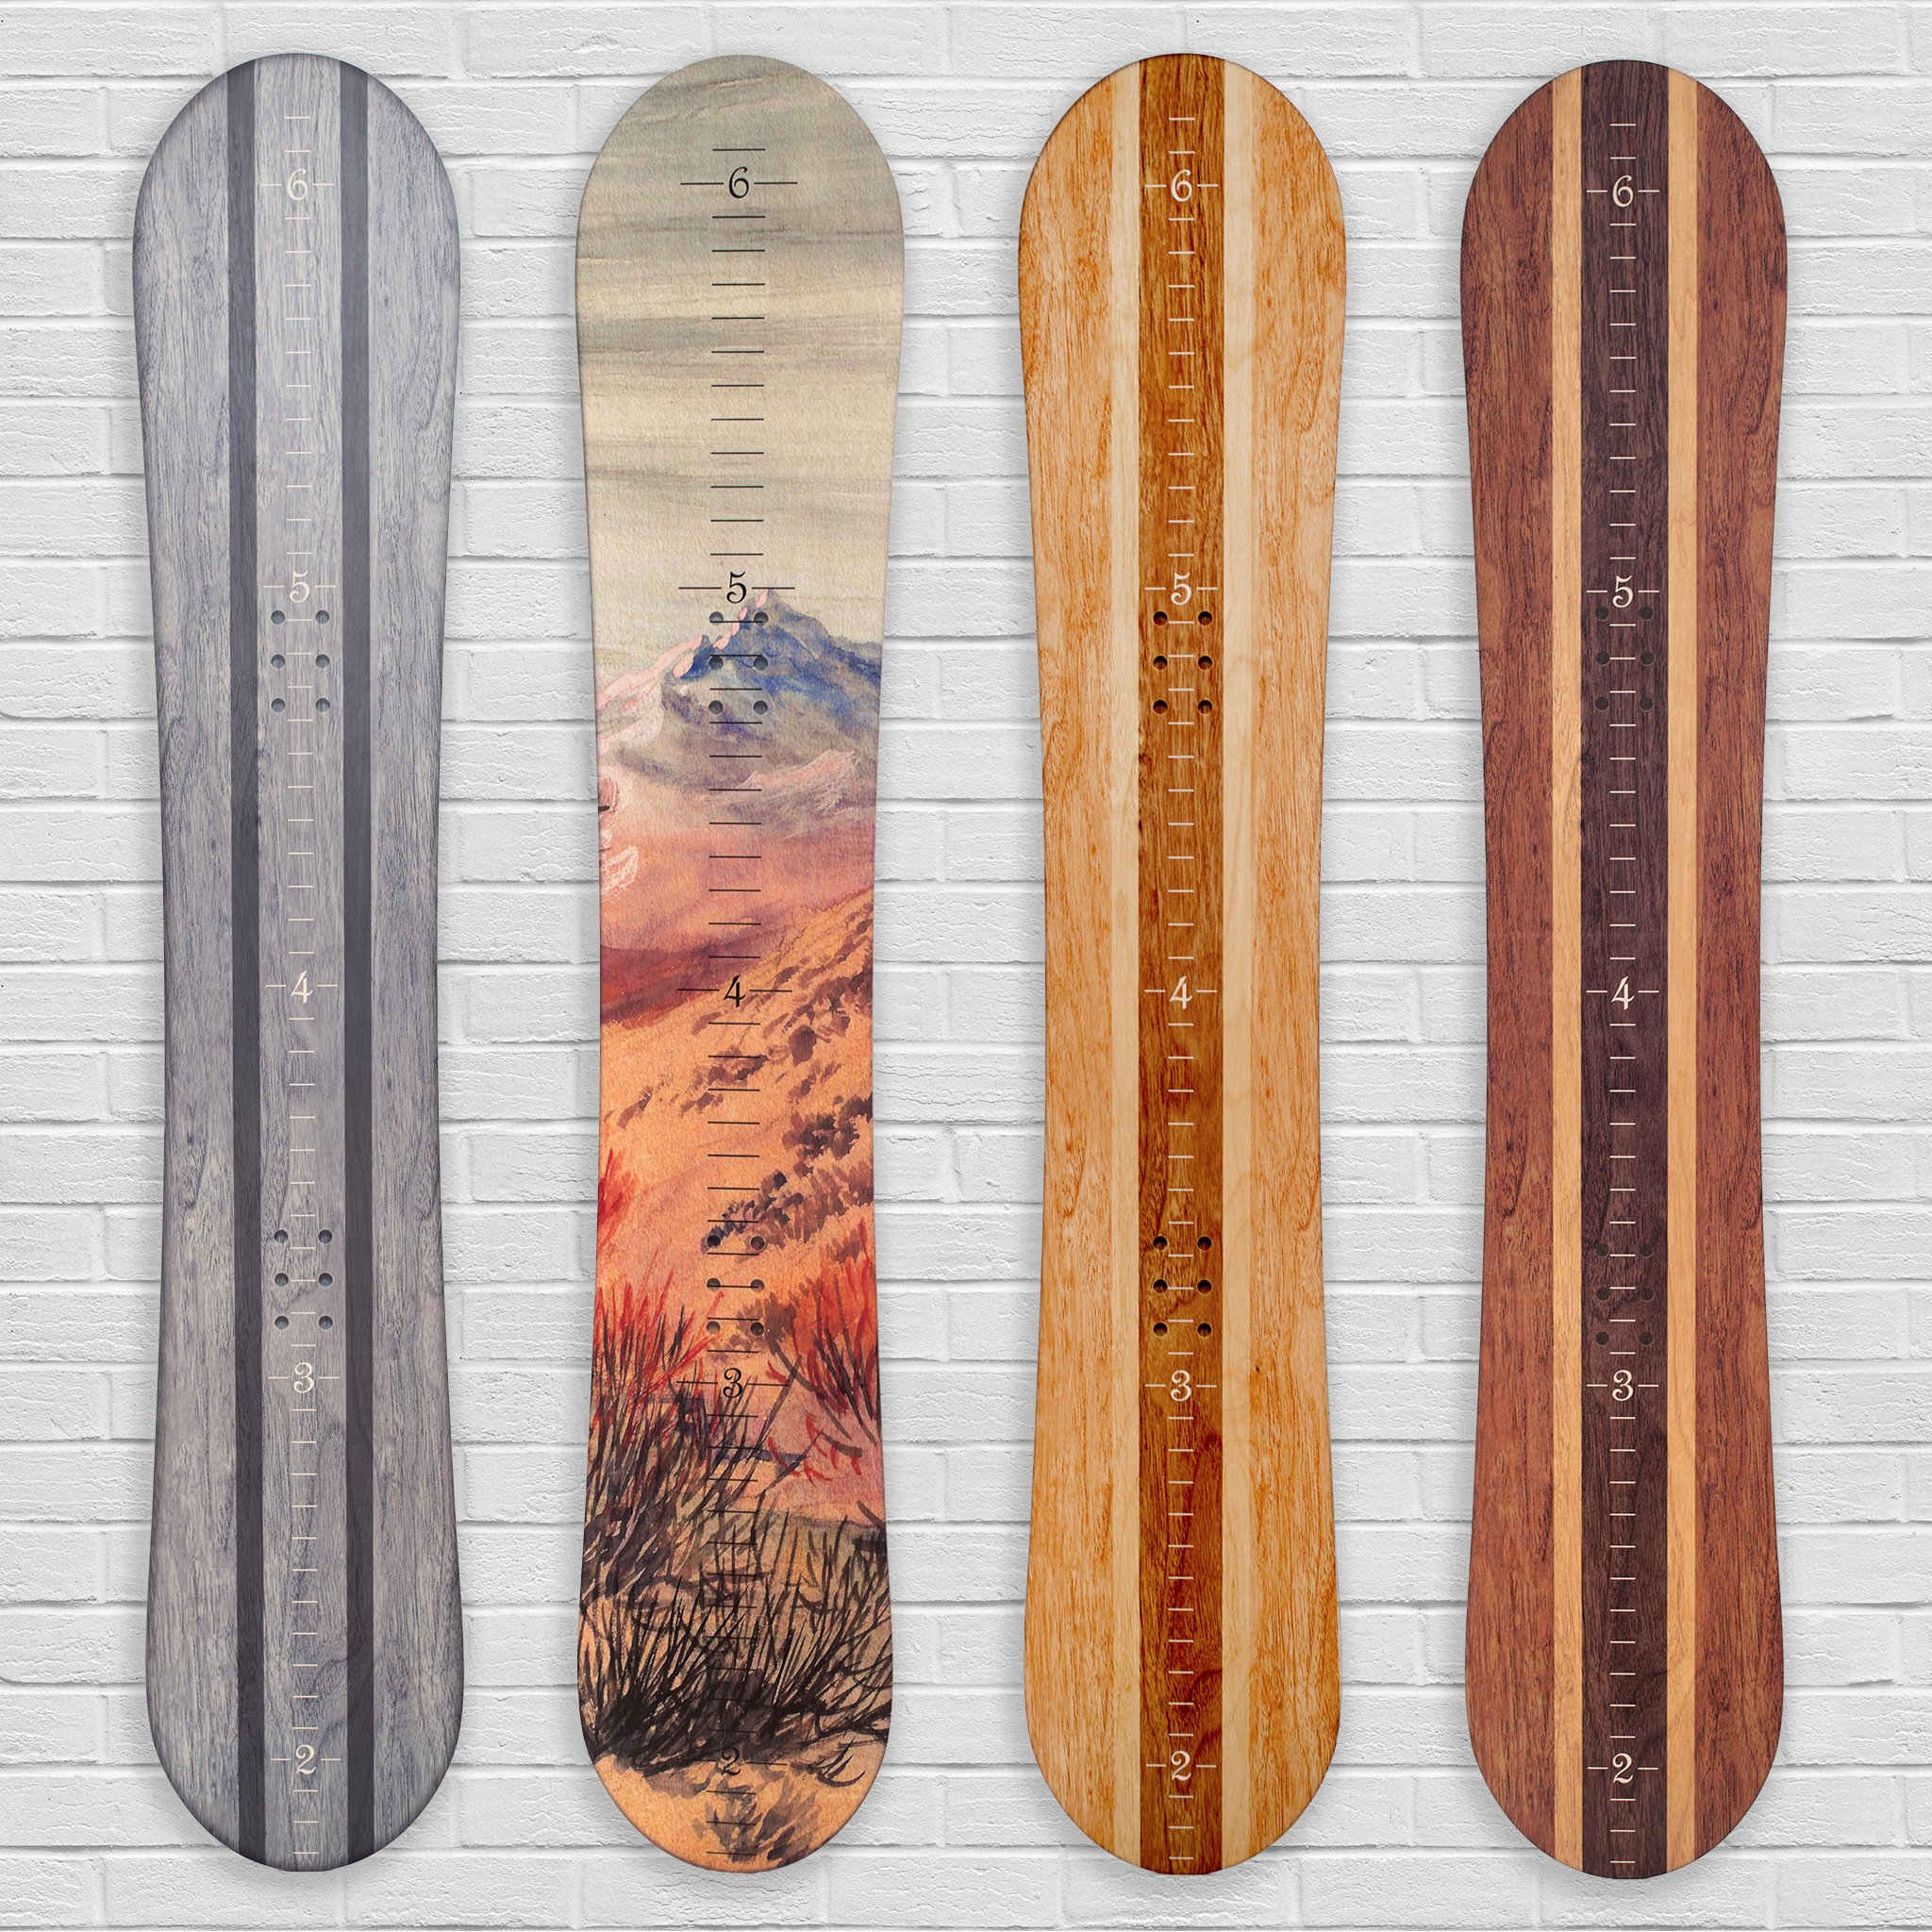 Growth Chart Art | Wooden Snowboard Height Chart for Kids, Boys, Girls for Measuring Height of Kids, Nursery Wall Decor | Baby Snowboard | Traditional Wood by Headwaters Studio